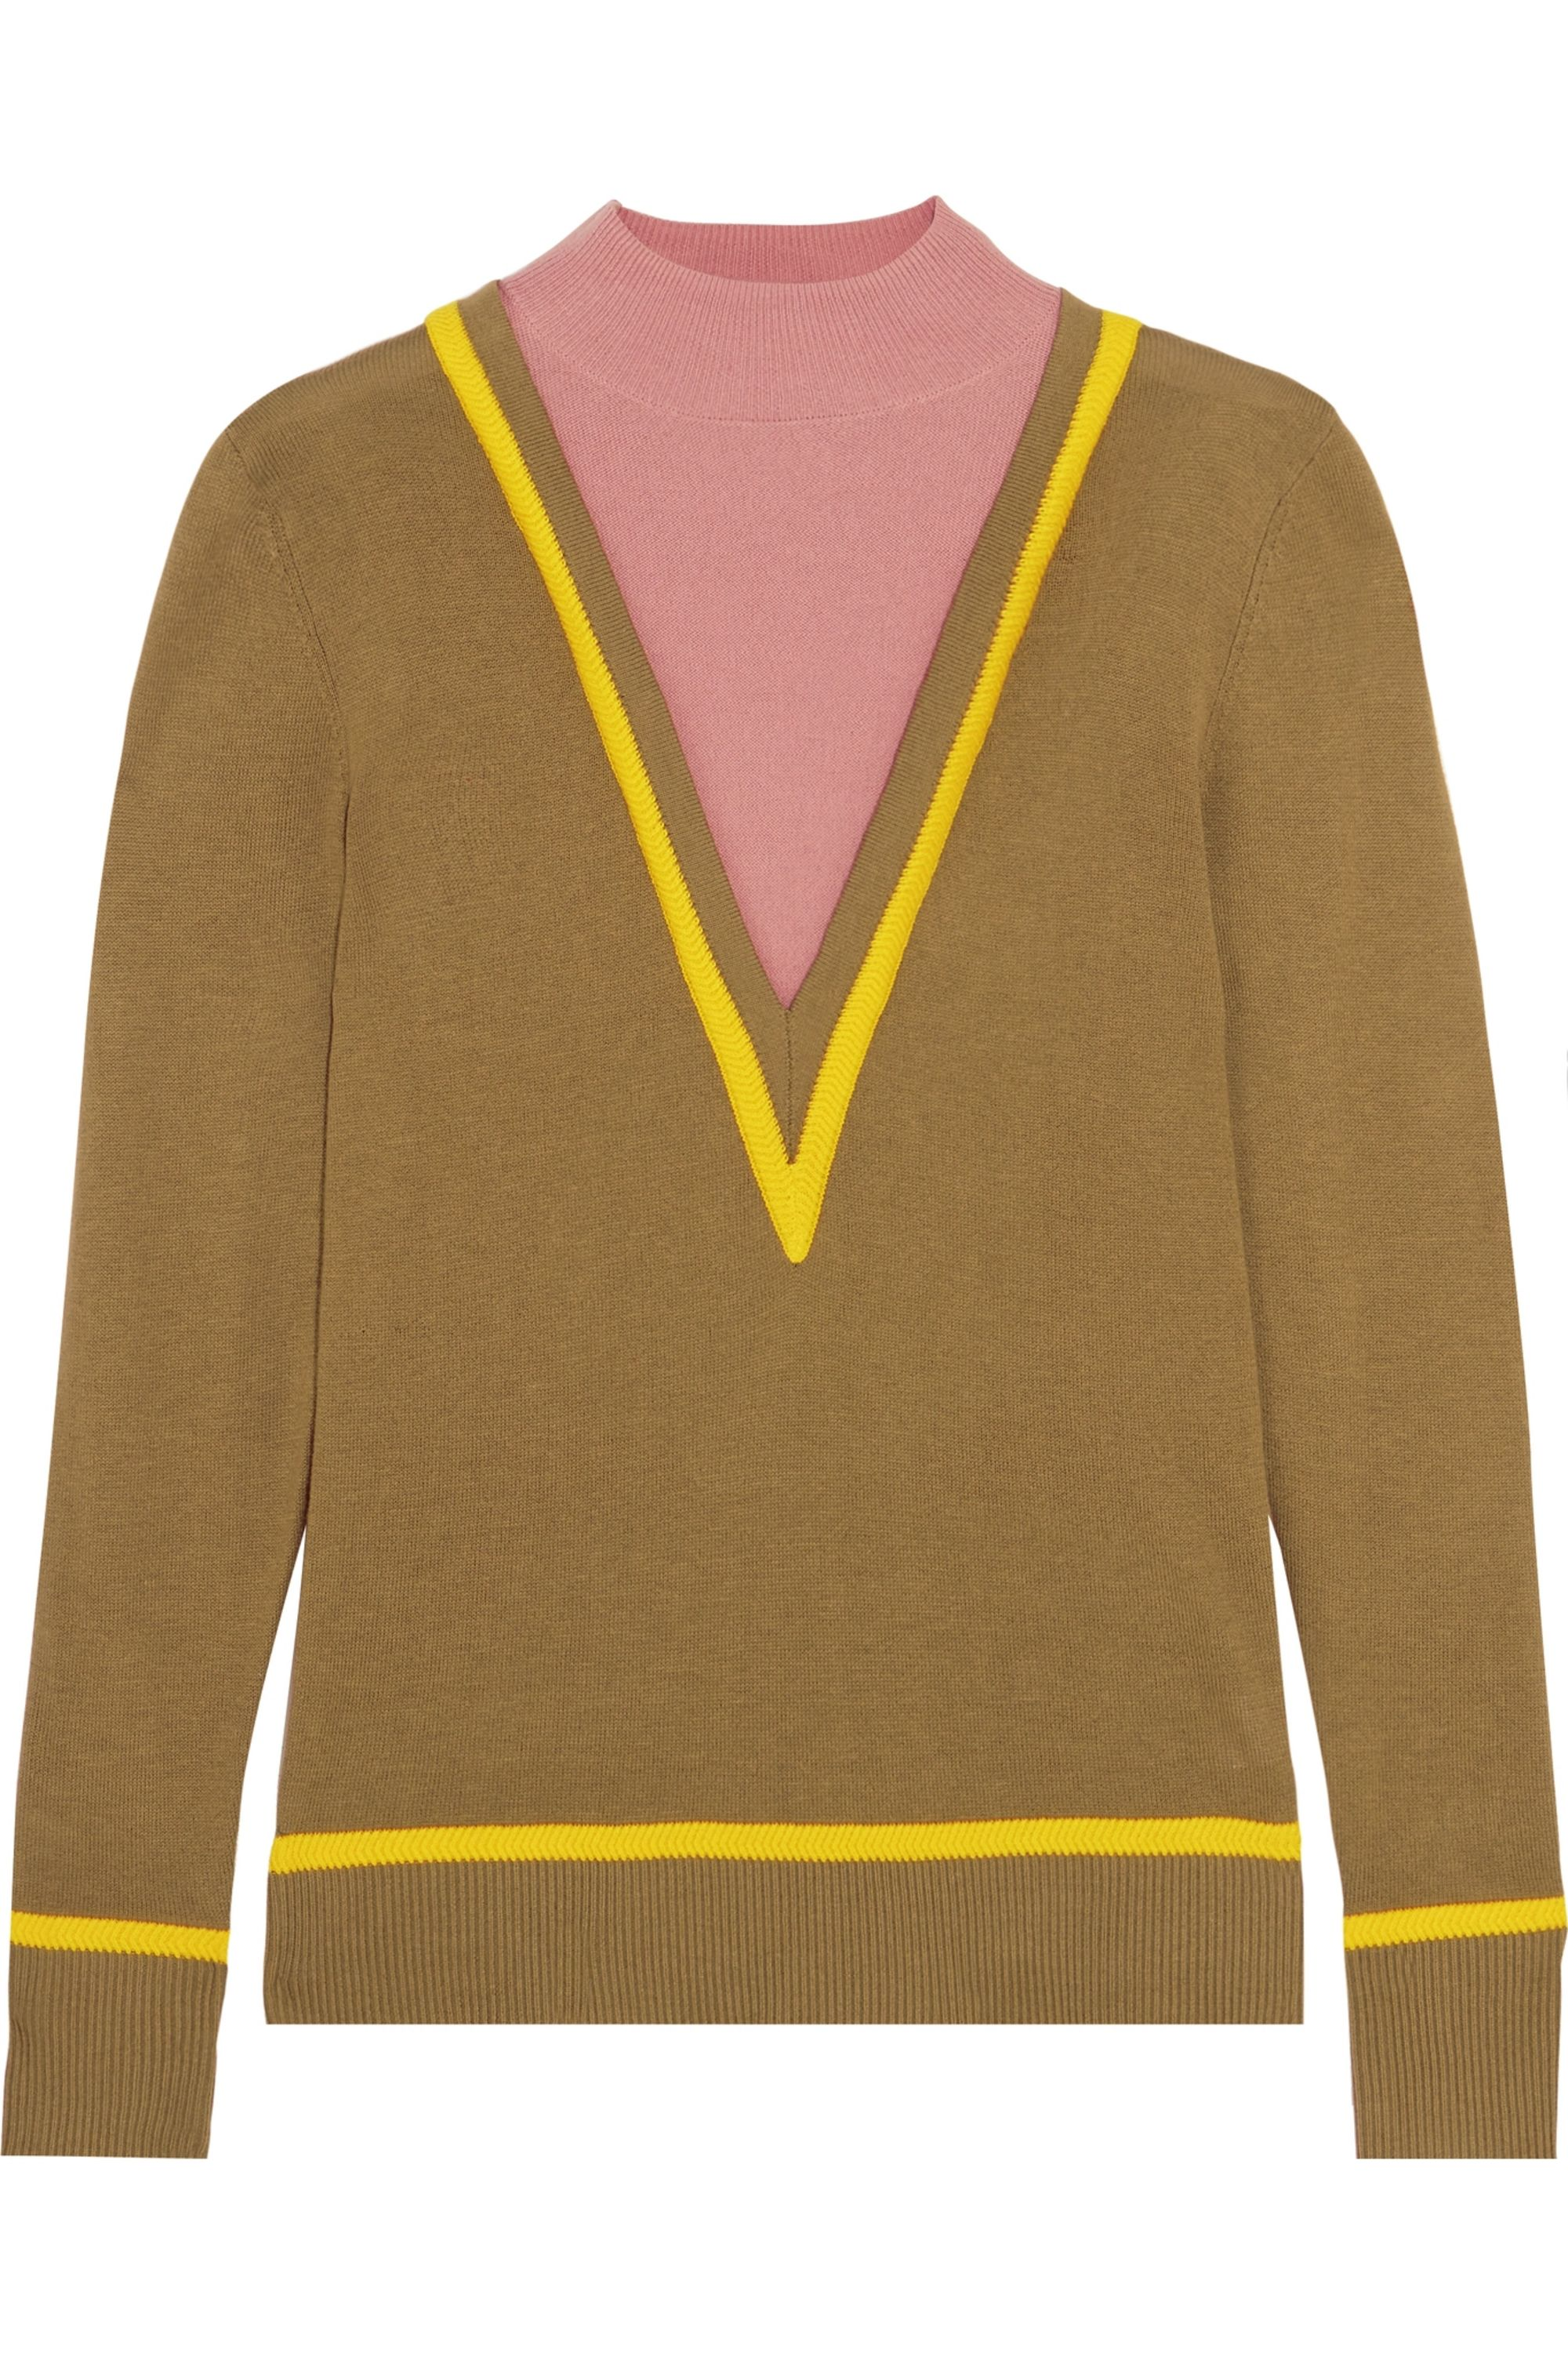 Victor Glemaud Layered cotton and cashmere-blend turtleneck sweater